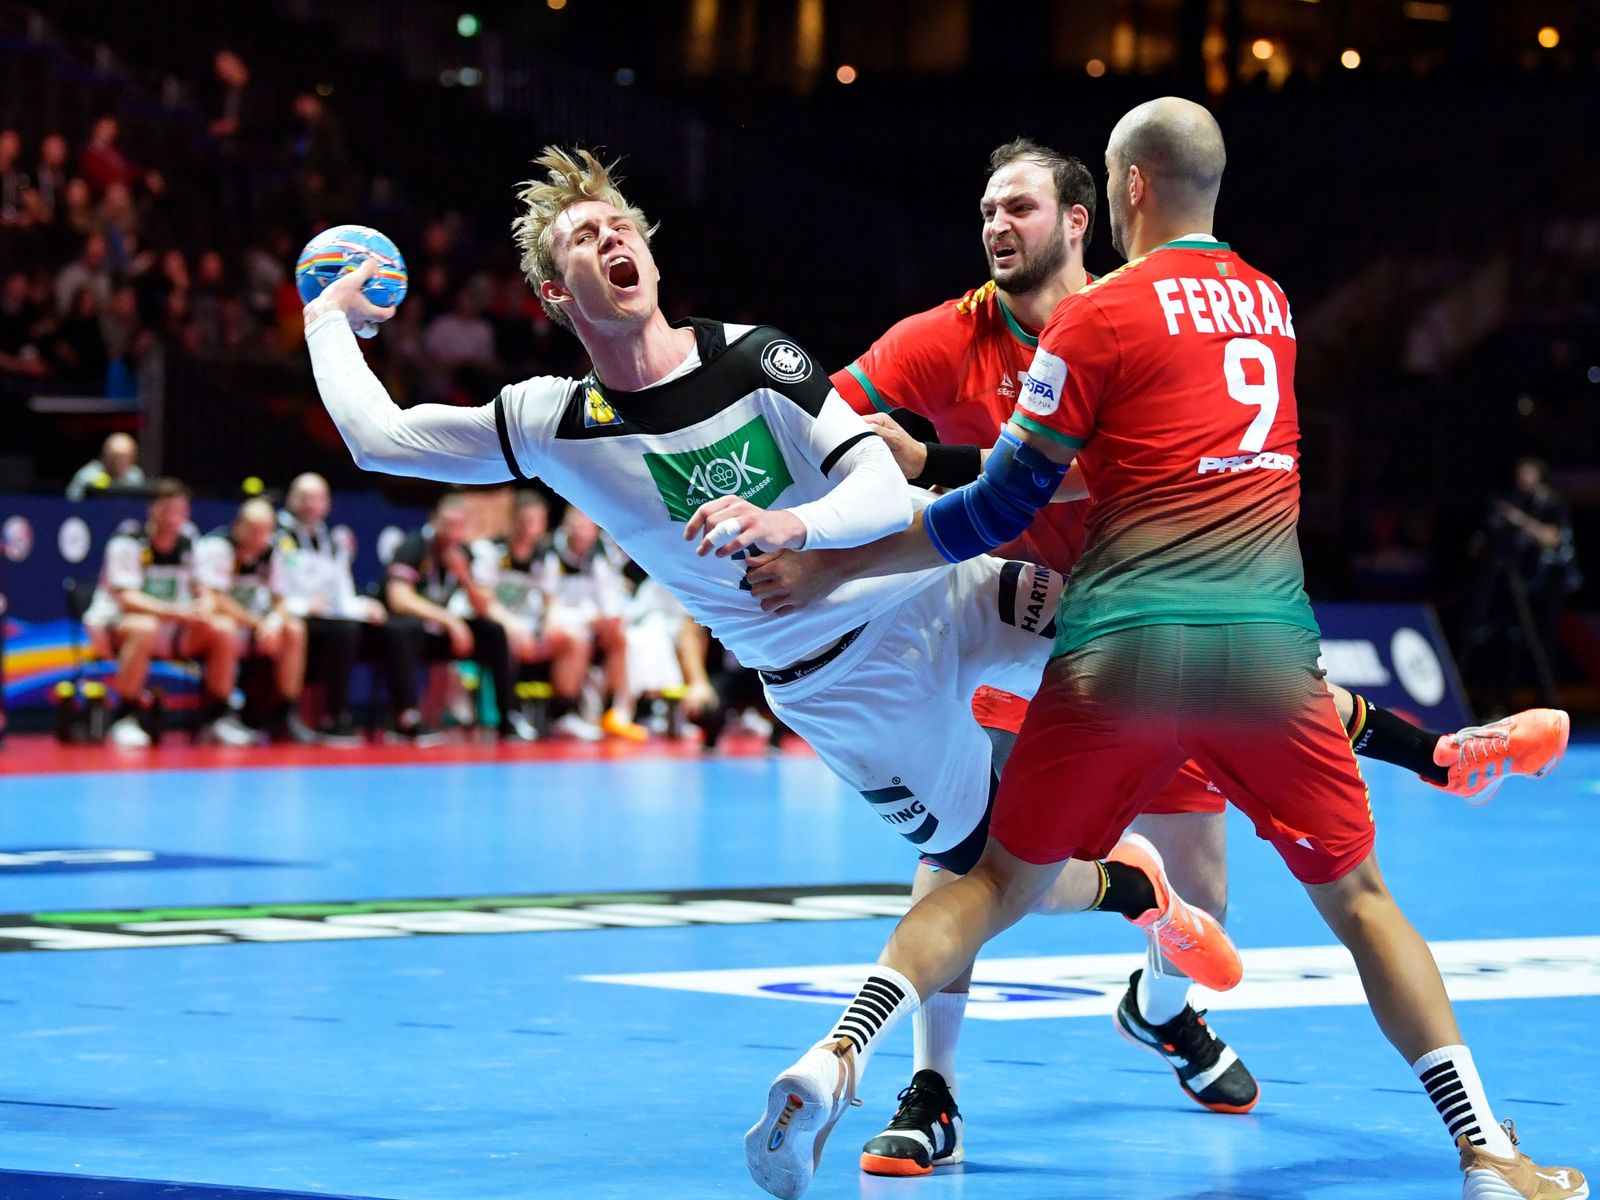 EHF Handball Men European Championship, Stockholm, Sweden - 25 Jan 2020